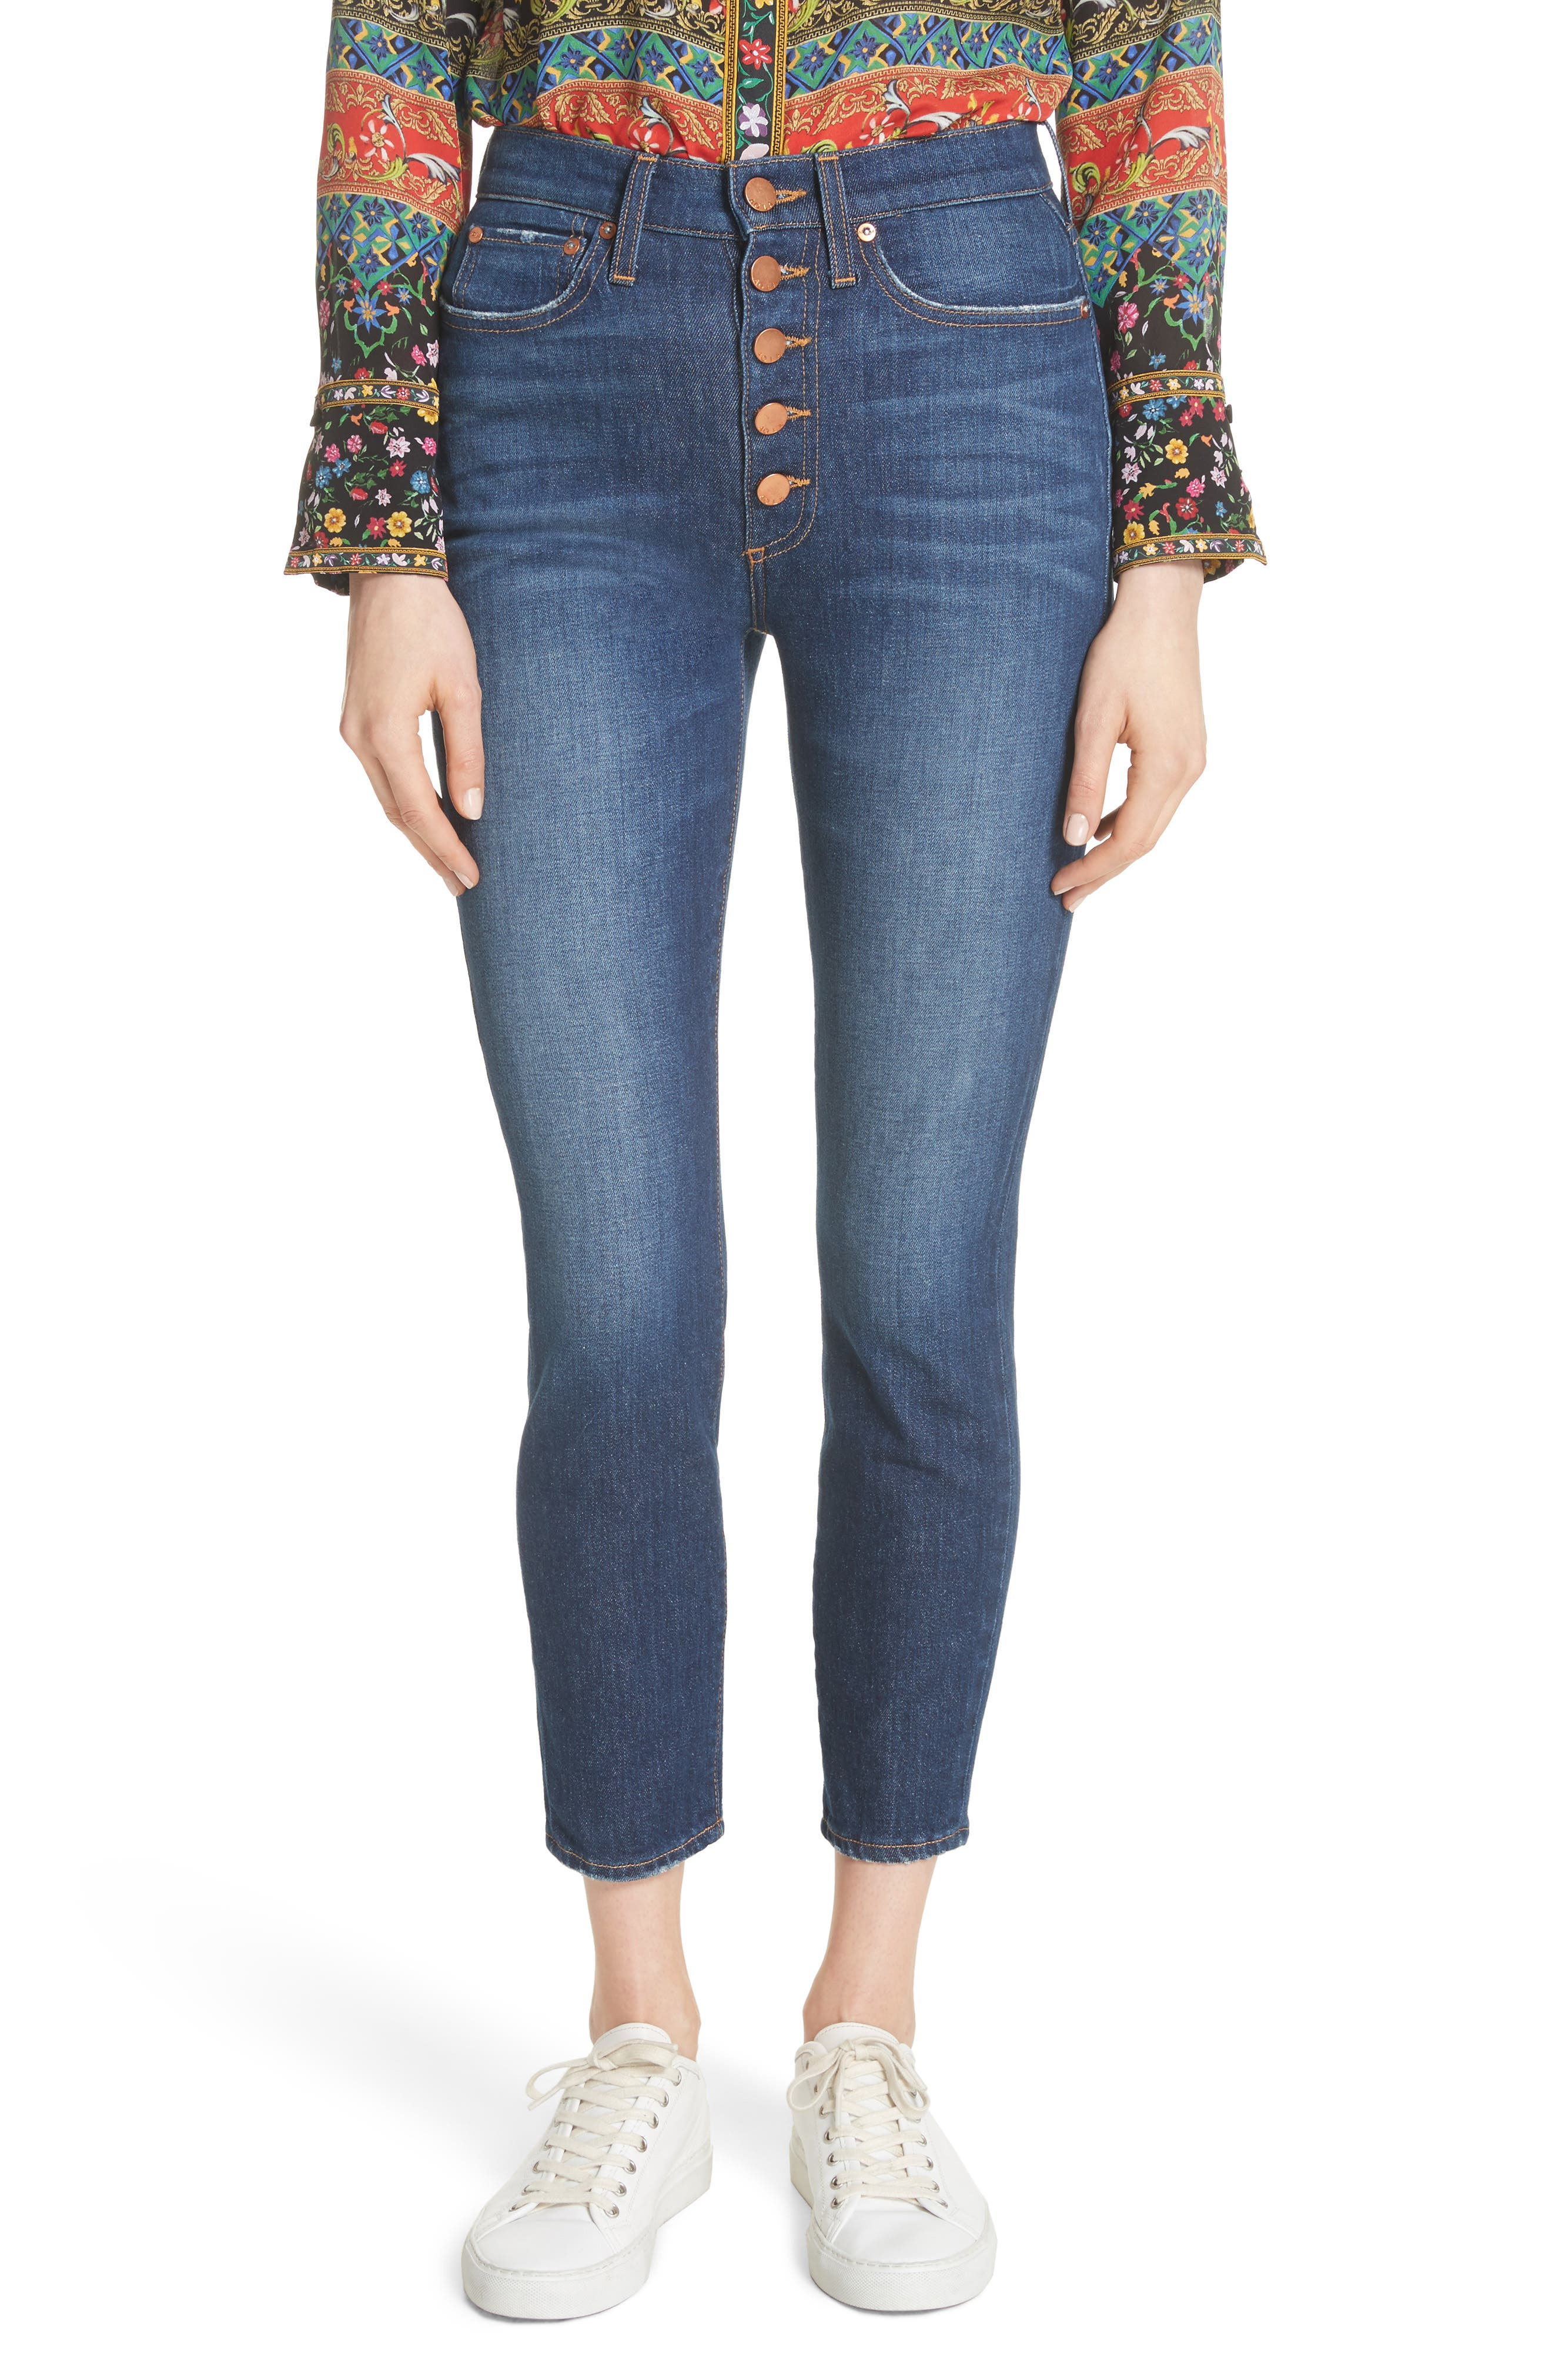 AO.LA Good High Waist Exposed Button Skinny Jeans,                             Main thumbnail 1, color,                             472